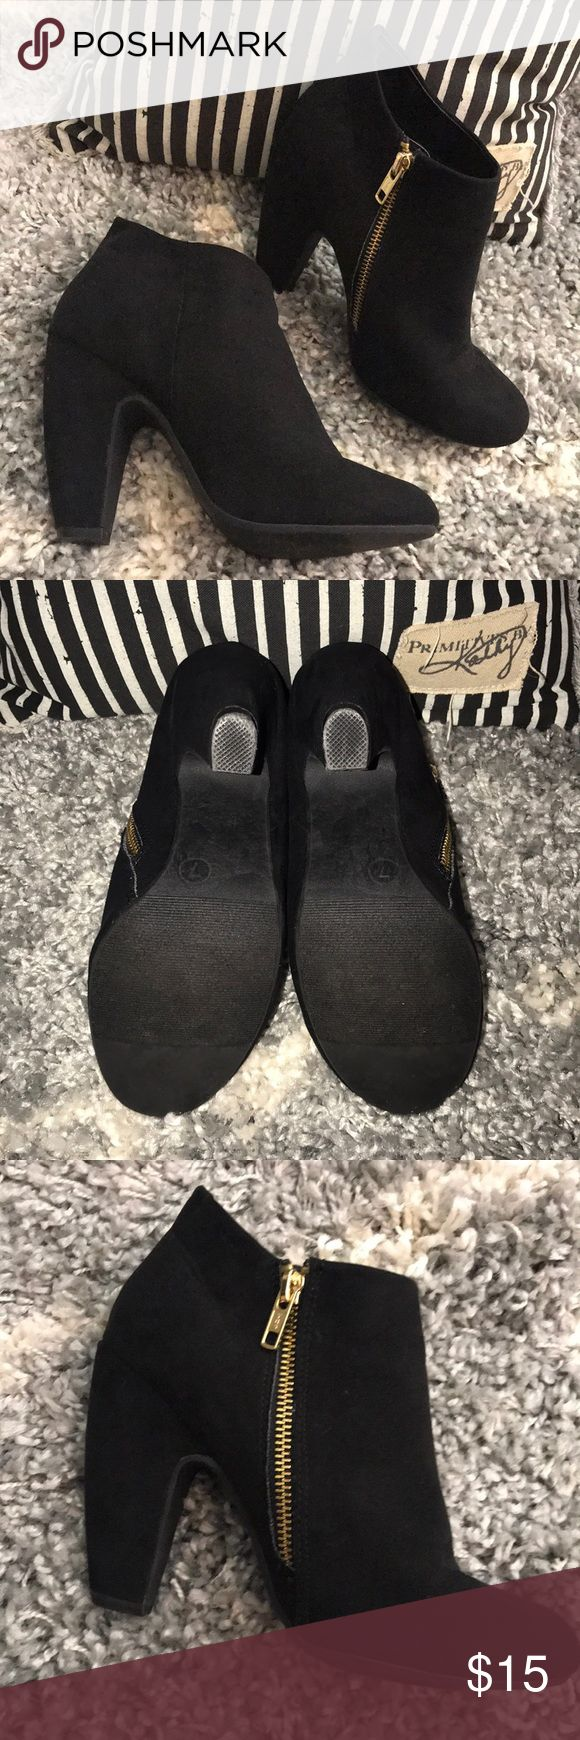 Black zip up booties Suade type material on outside; they have only been warn once, indoors. They have a taller heal so you may not feel comfortable walking if you aren't used to that.  Gold zipper on the side. Very clean, no odors or stains. A few small scuffs as seen in photos. Target Shoes Ankle Boots & Booties